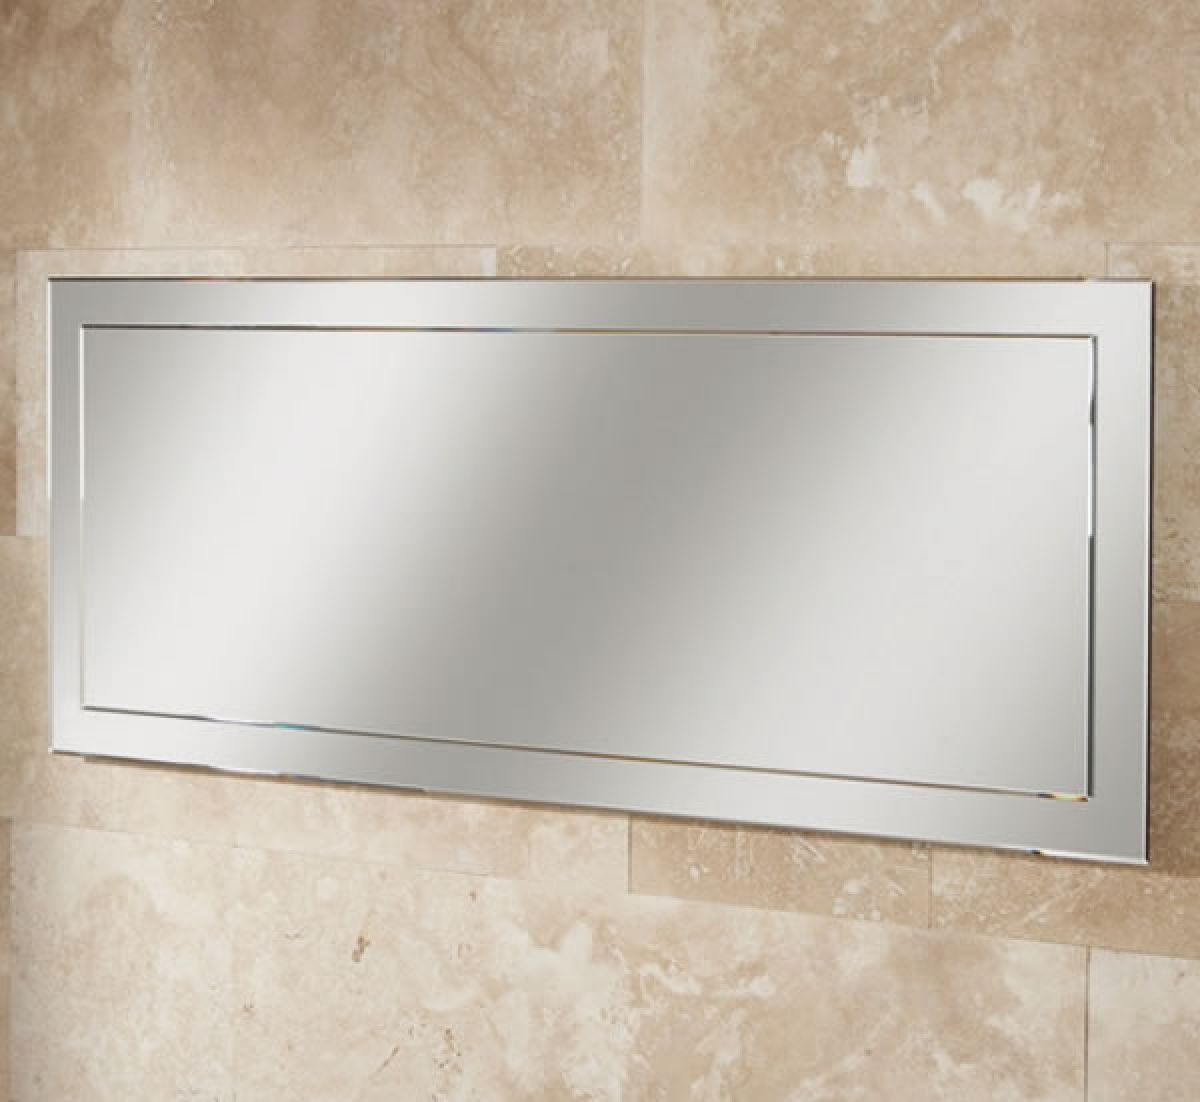 Hib isis large bathroom mirror uk bathrooms for Large mirrors for bathroom walls